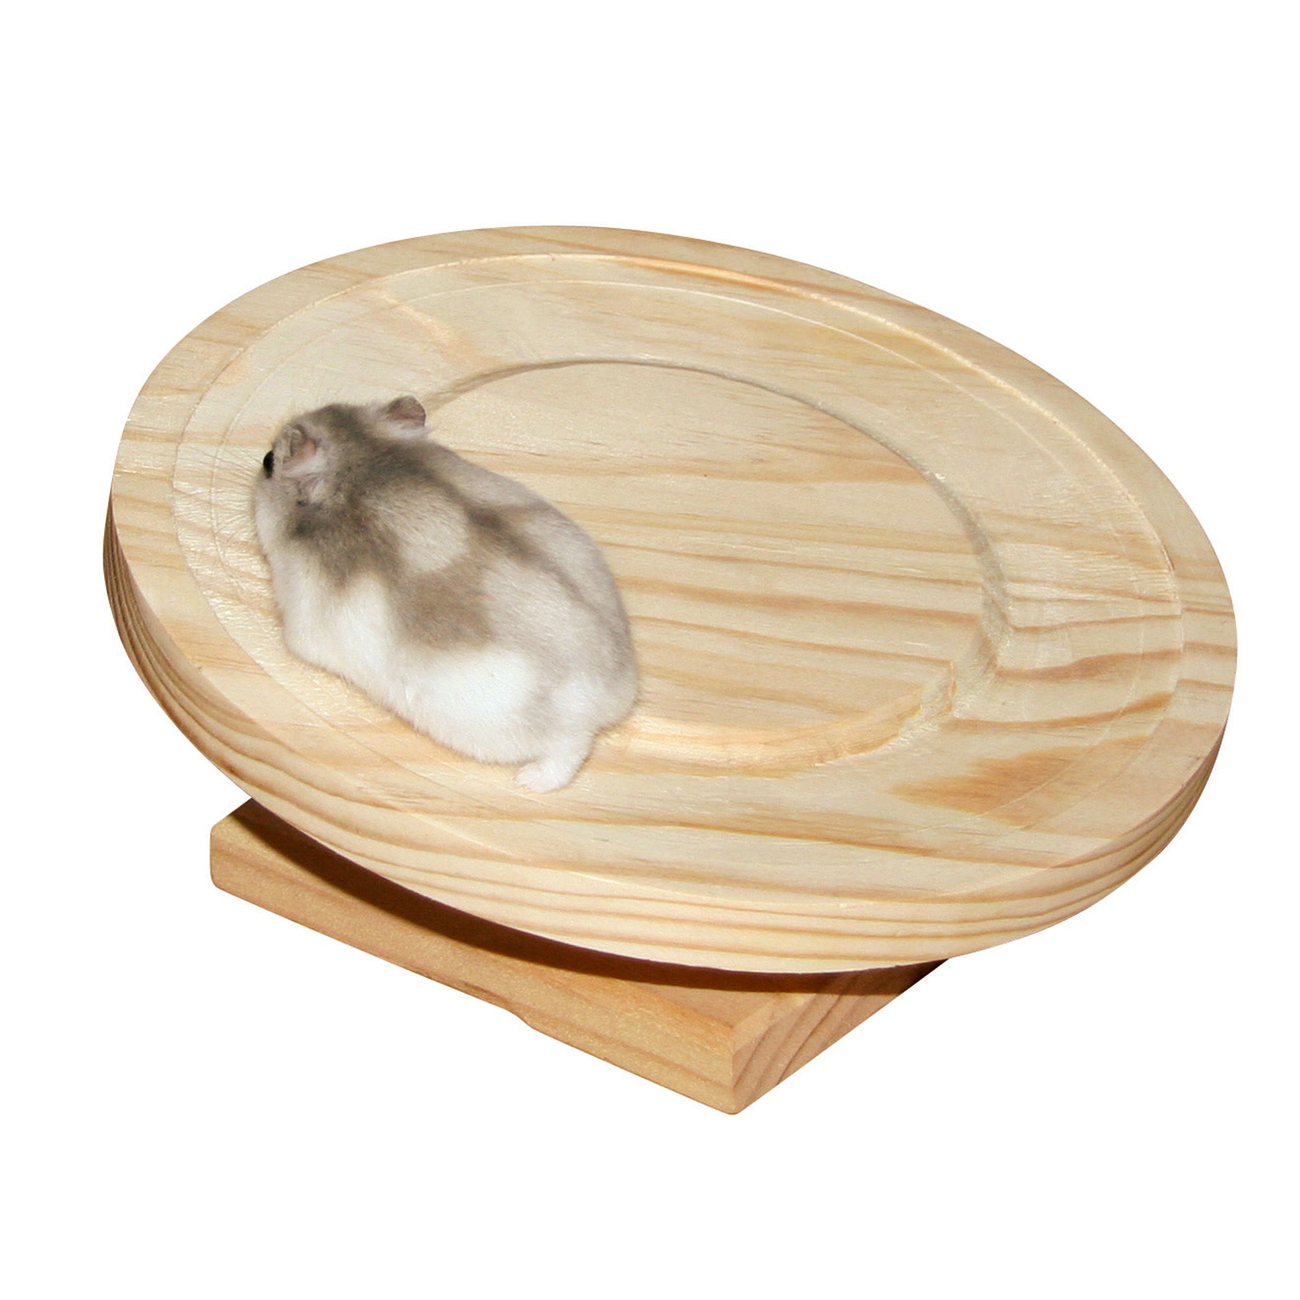 laufteller holz f r hamster von kerbl g nstig bestellen. Black Bedroom Furniture Sets. Home Design Ideas